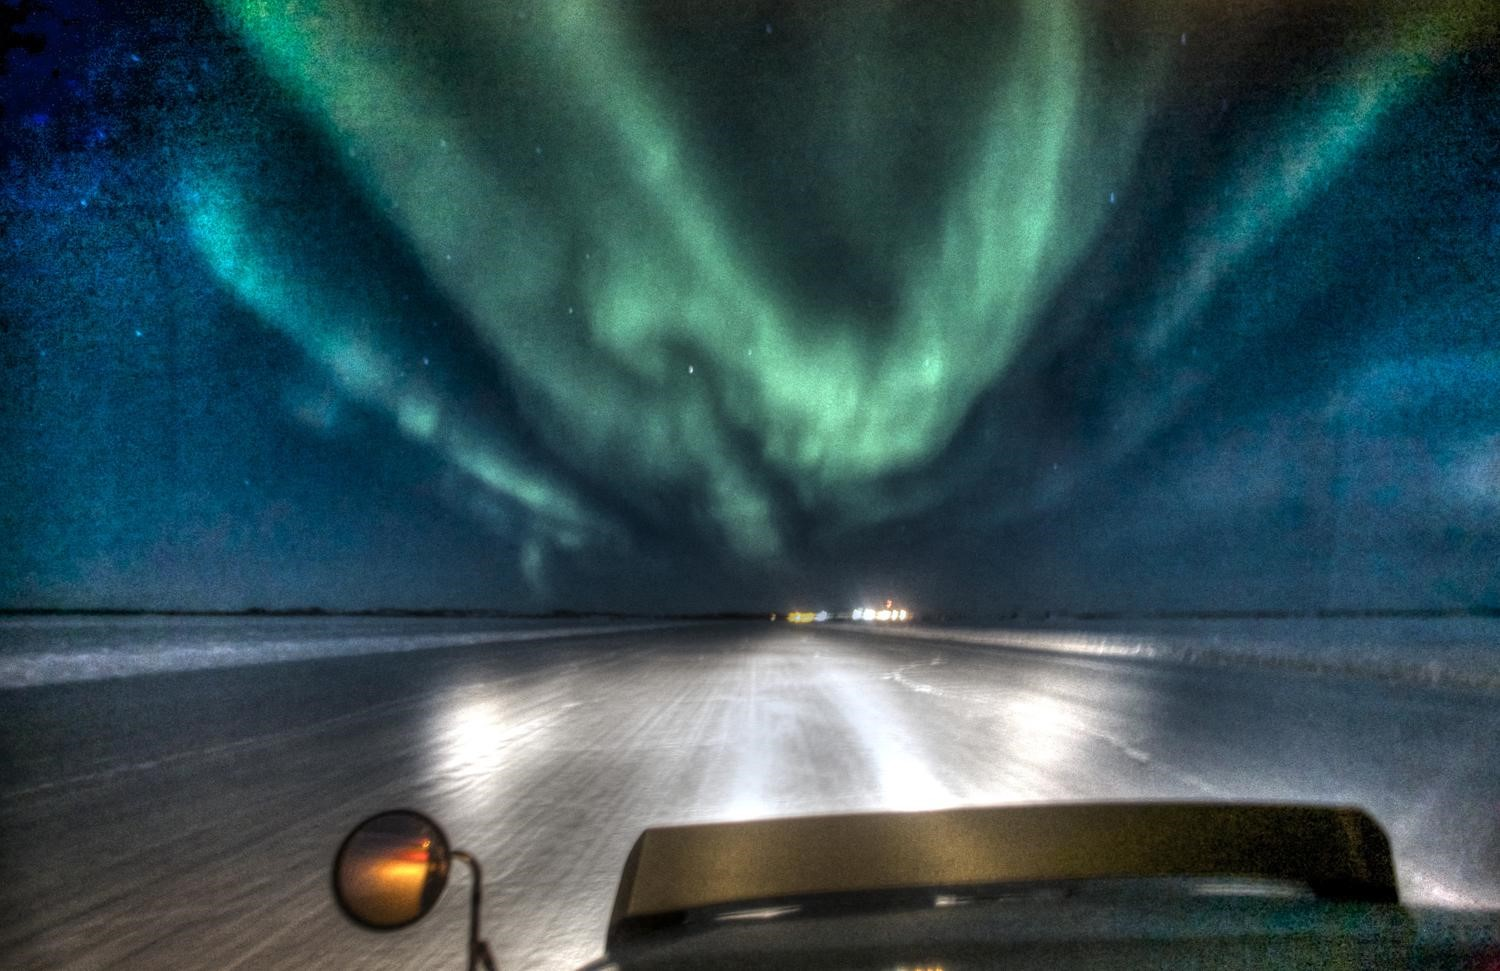 Approaching the northern lights along the ice road